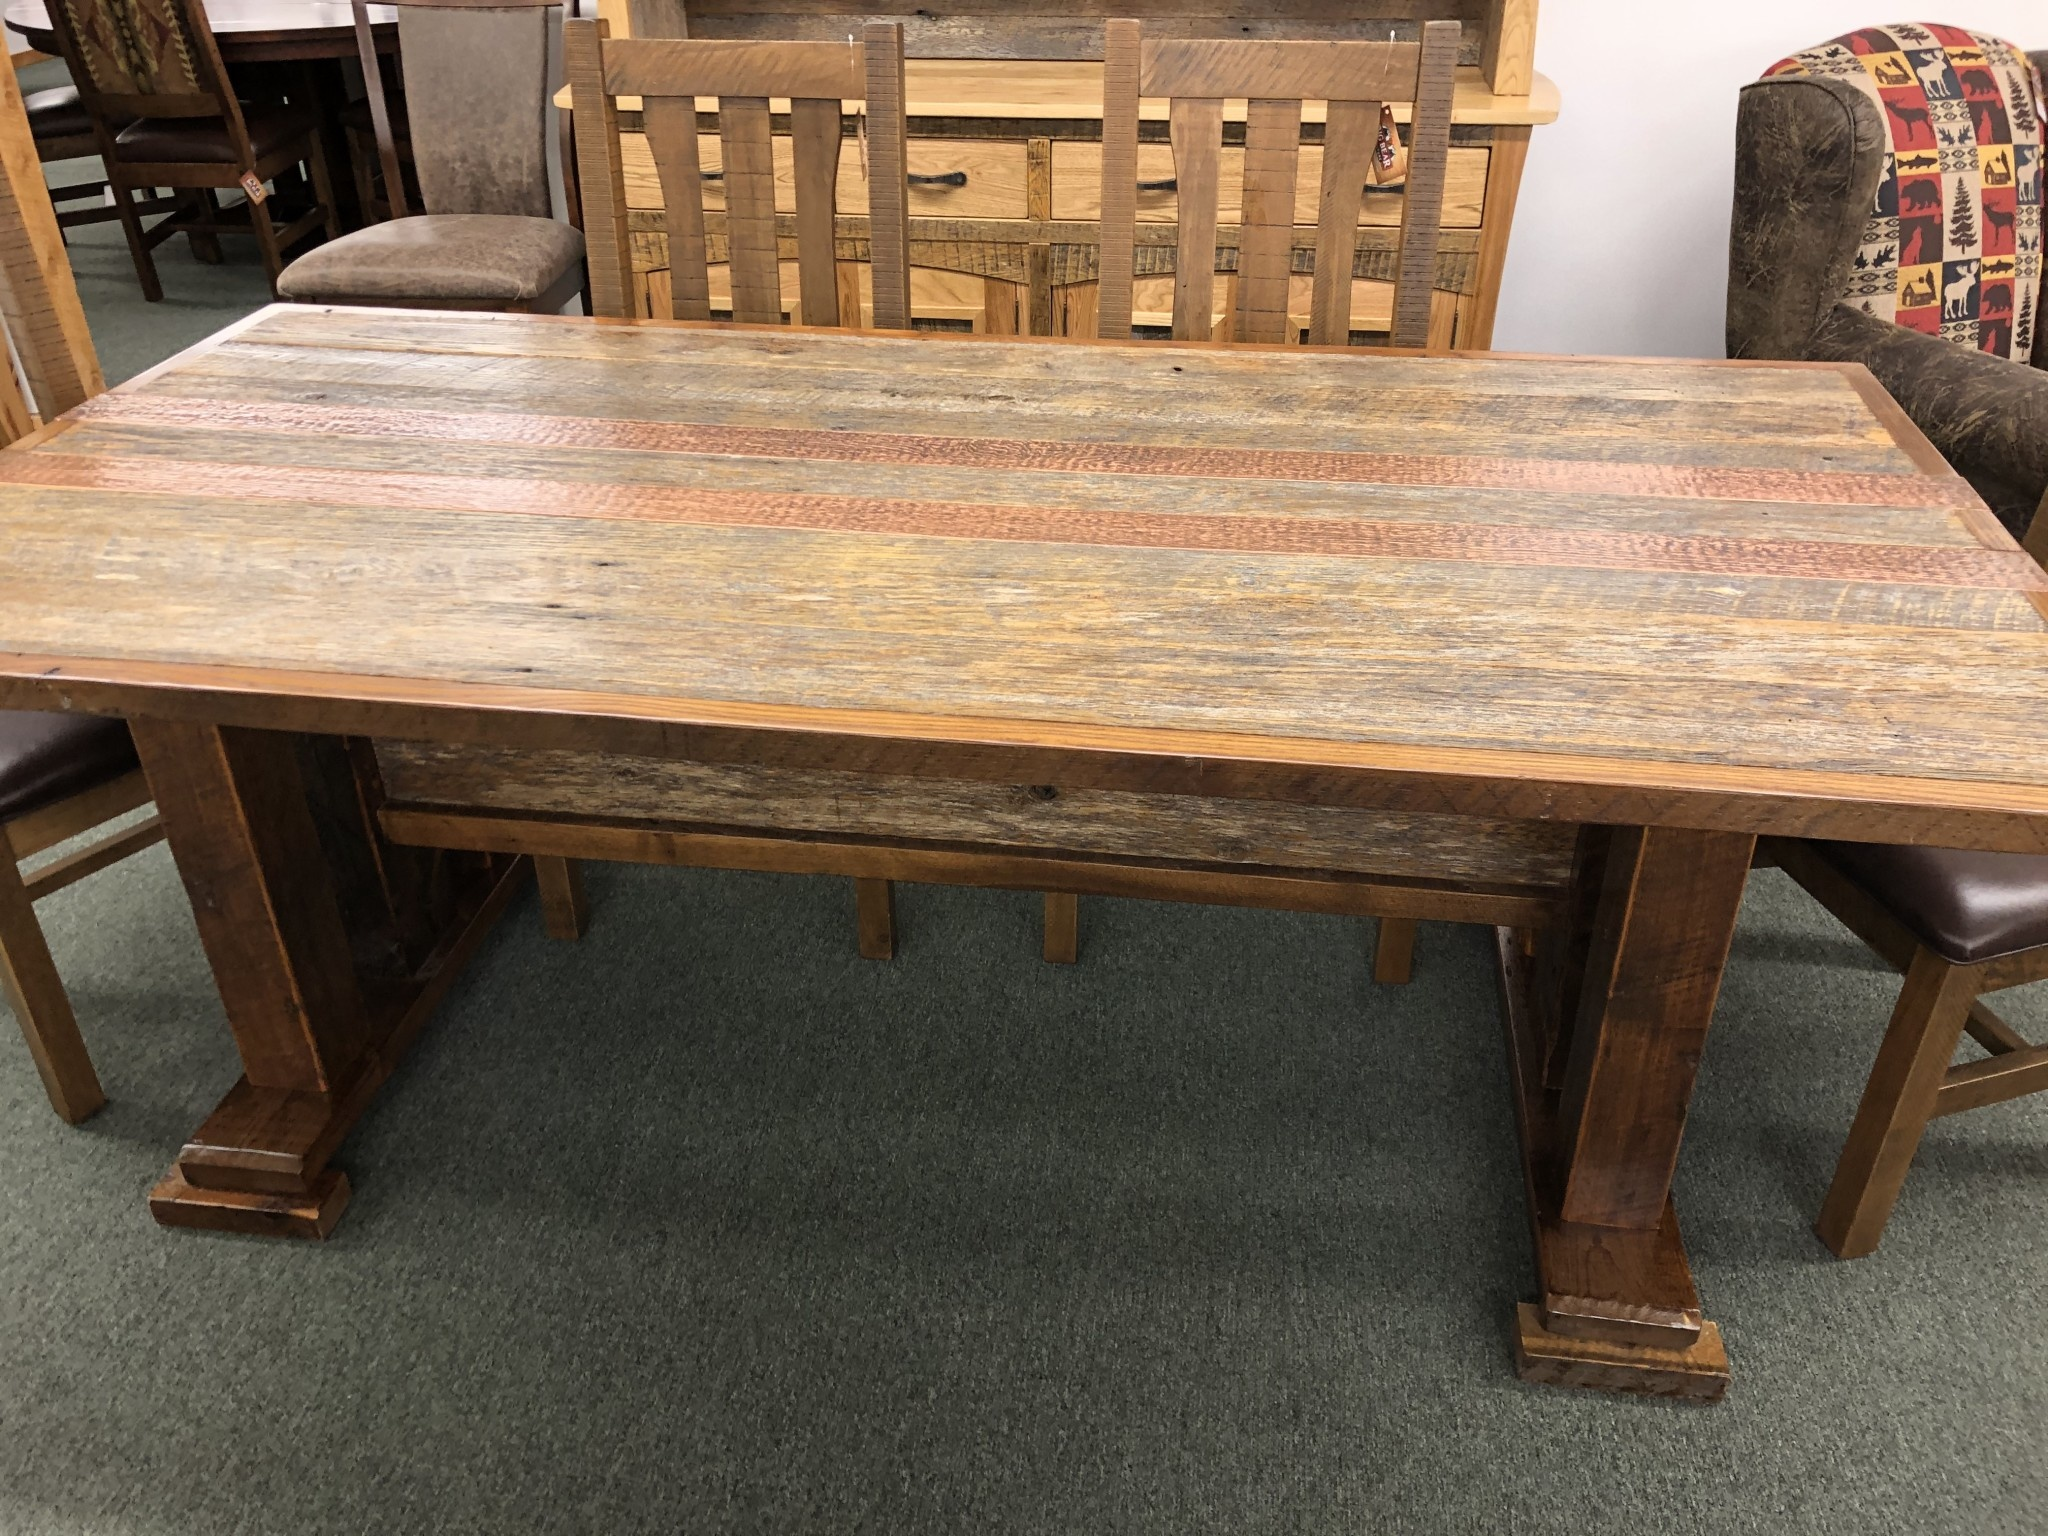 Green Gables Copperhead Dining Table 31H x 84W x 42D